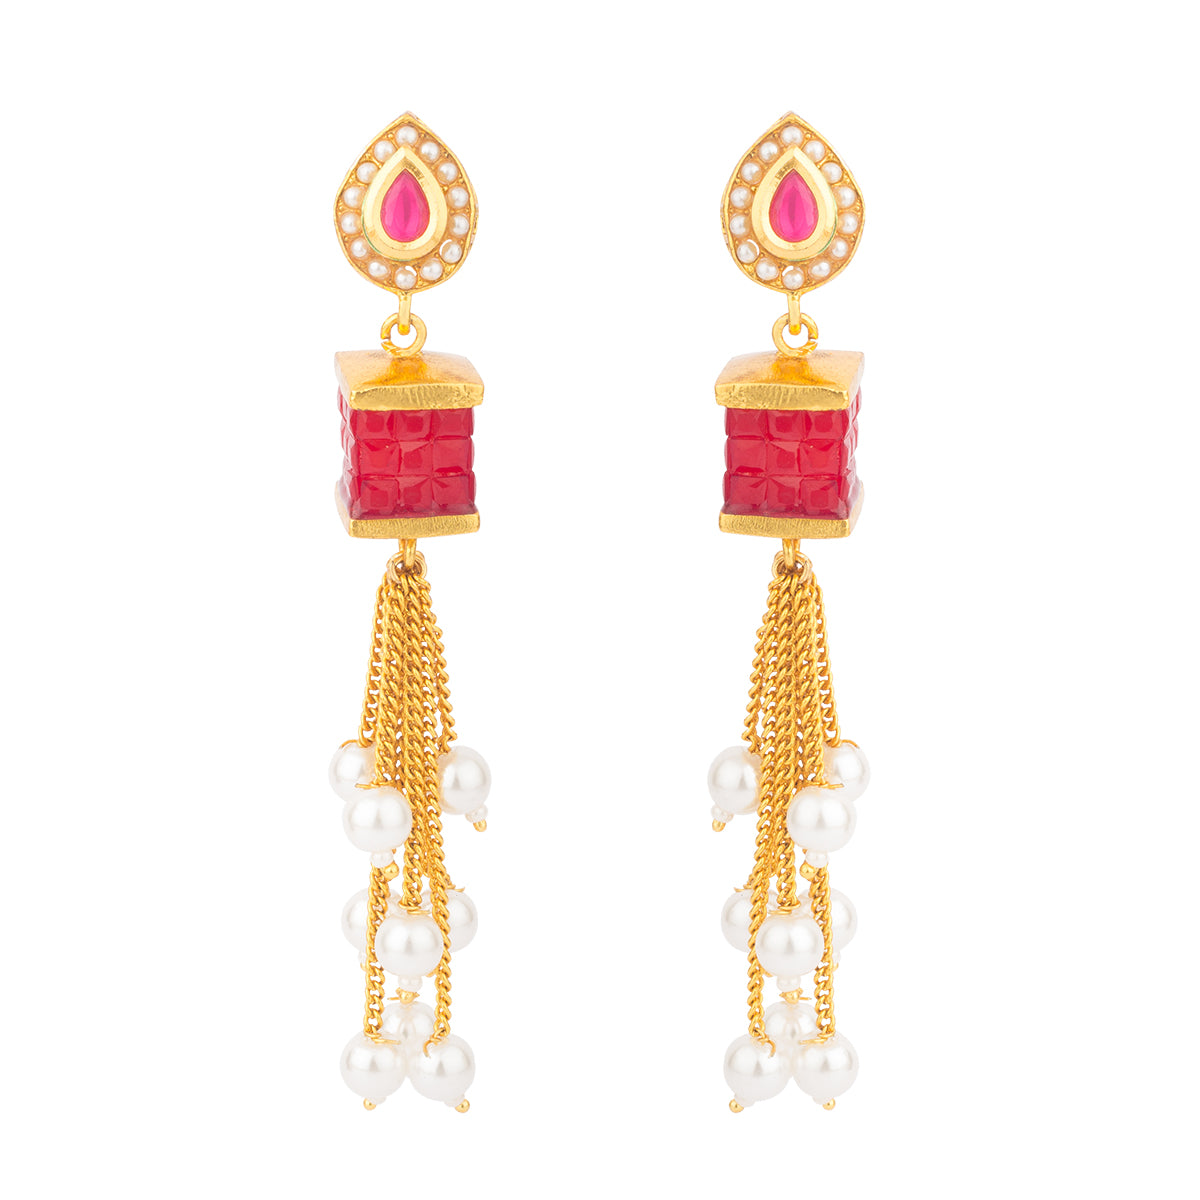 With a lovely color, this earring is carved in a box shaped stone and strings hanging with pearls making it uniquely gorgeous.